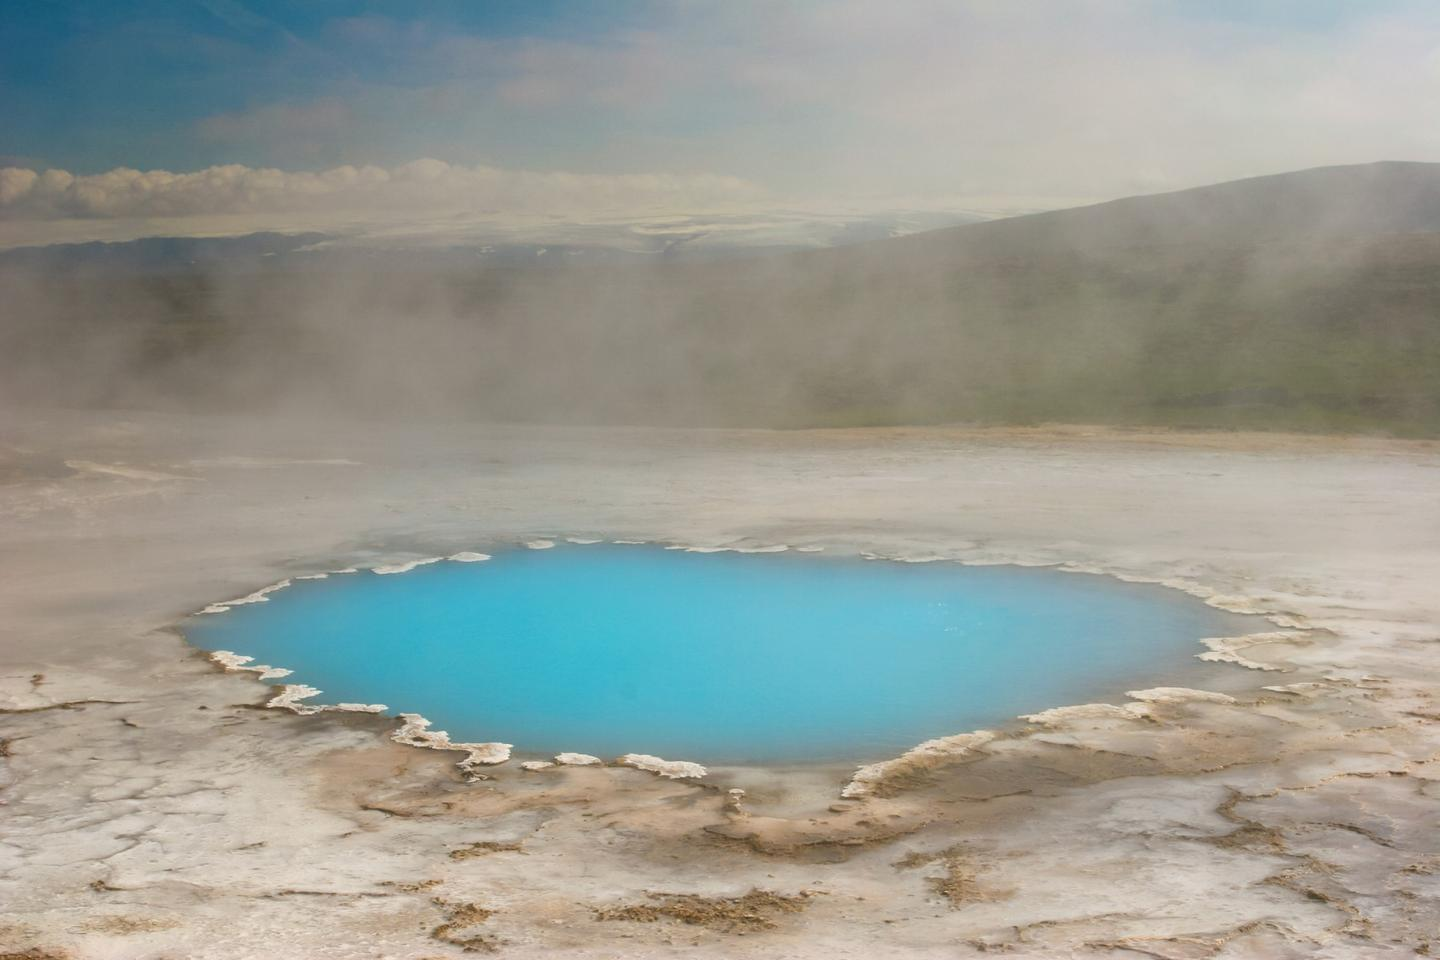 """Researchers have shown how life may have arisen from non-living matter in the """"primordial soup"""" of early Earth, thanks to molecules released during volcanism"""